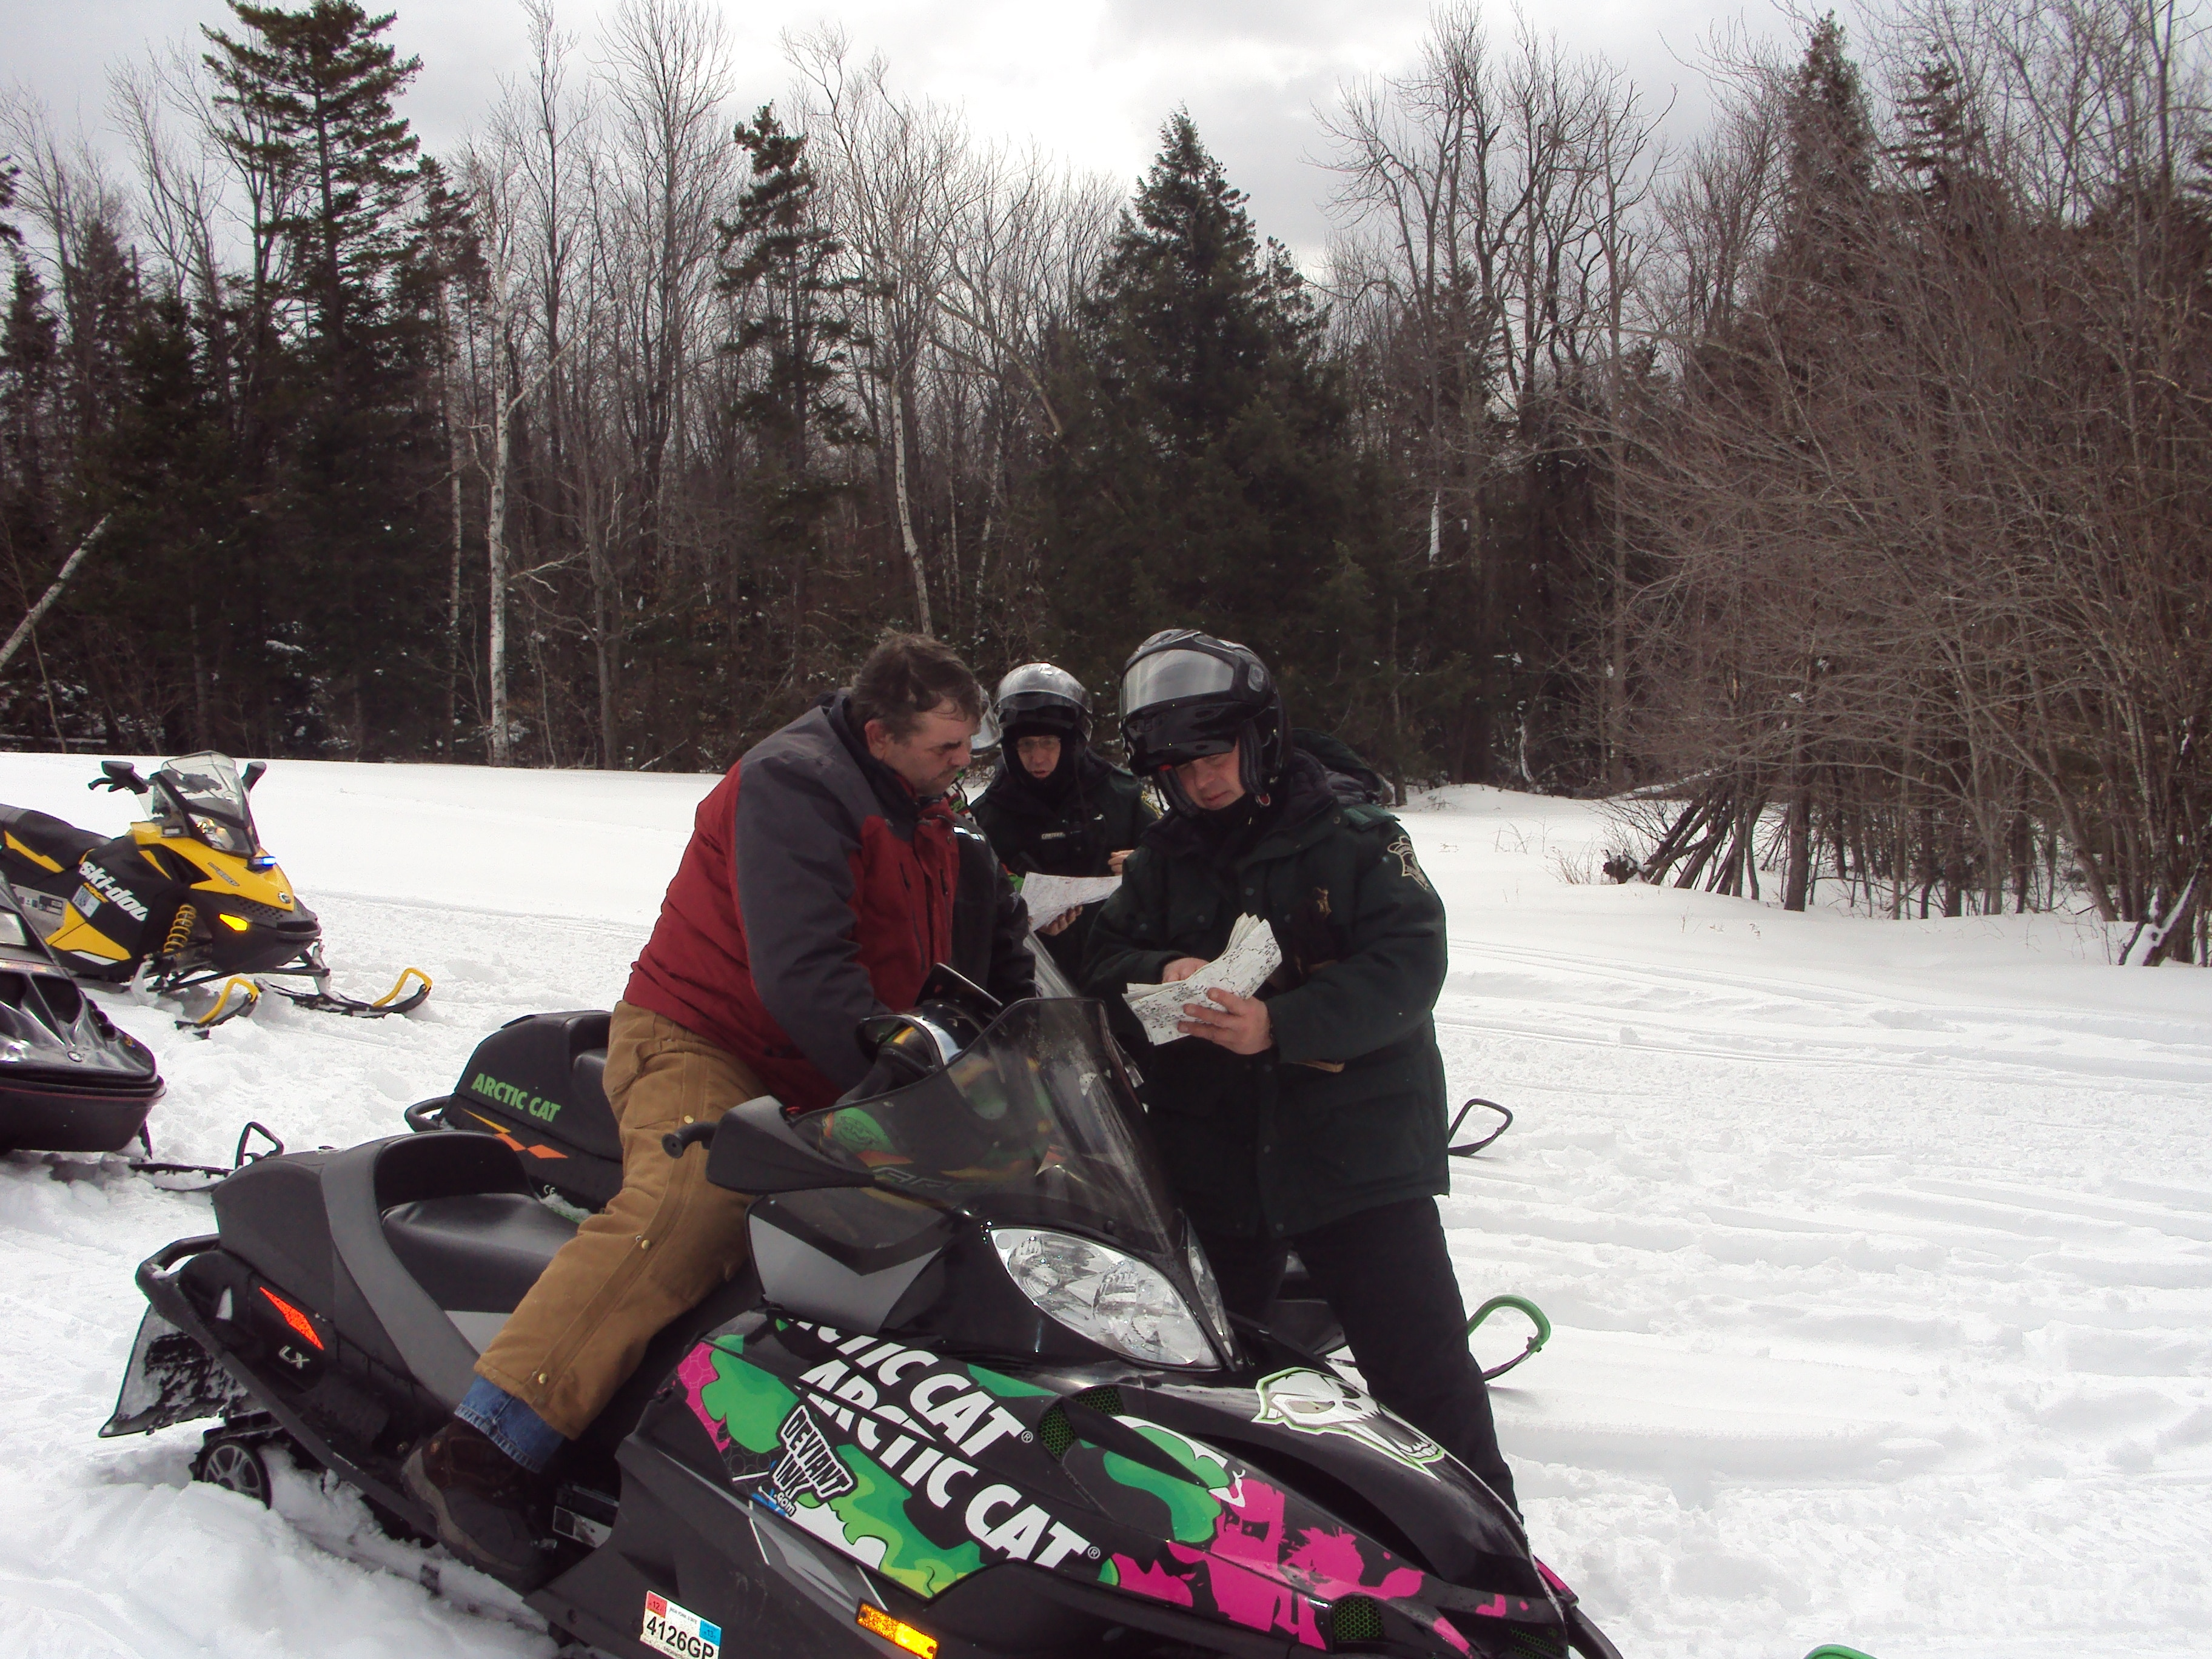 Environmental Police Officer explaining the Snowmobile Safety Laws